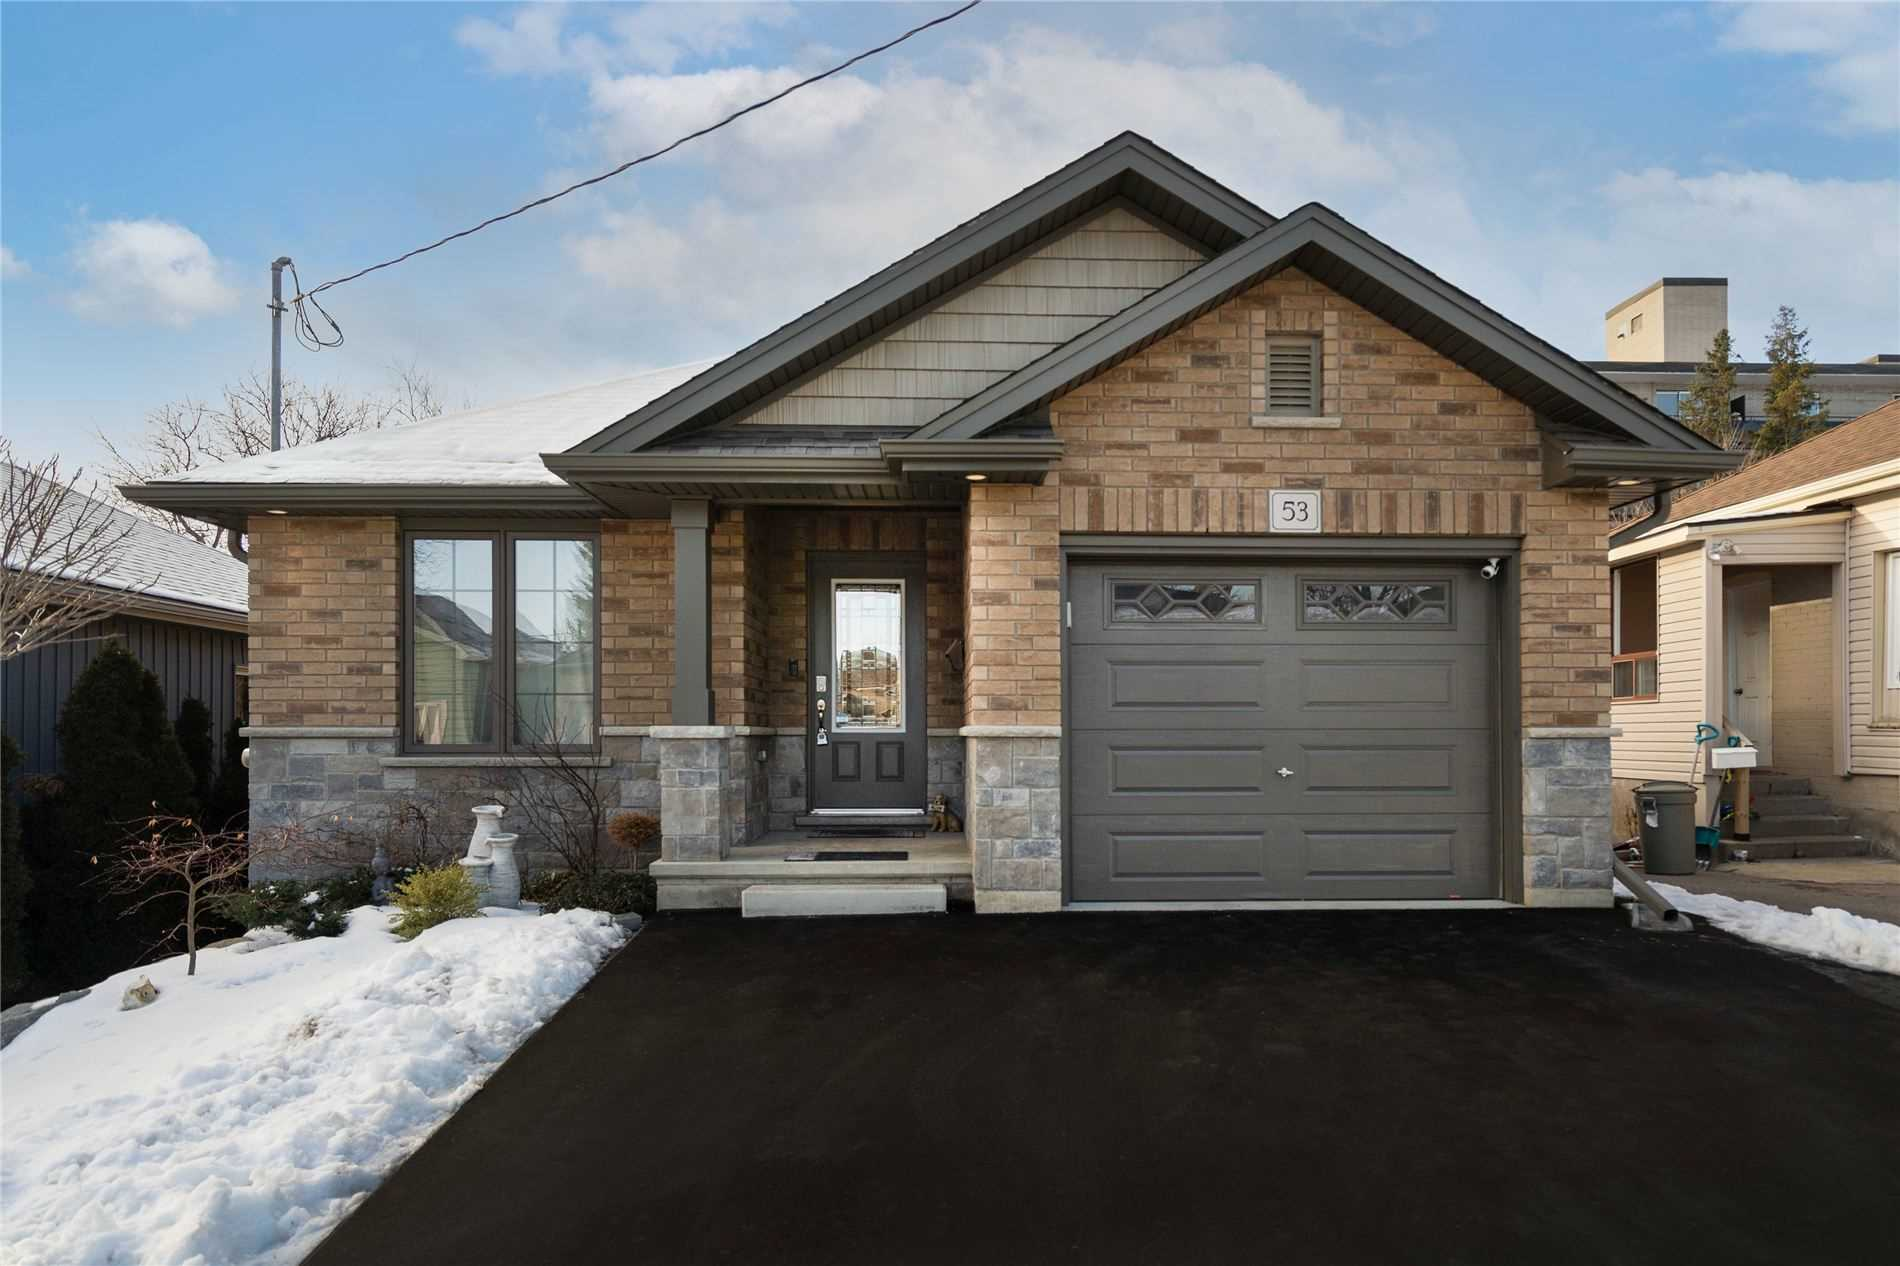 pictures of house for sale MLS: X5081189 located at 53 Dublin St, Brantford N3R2E3